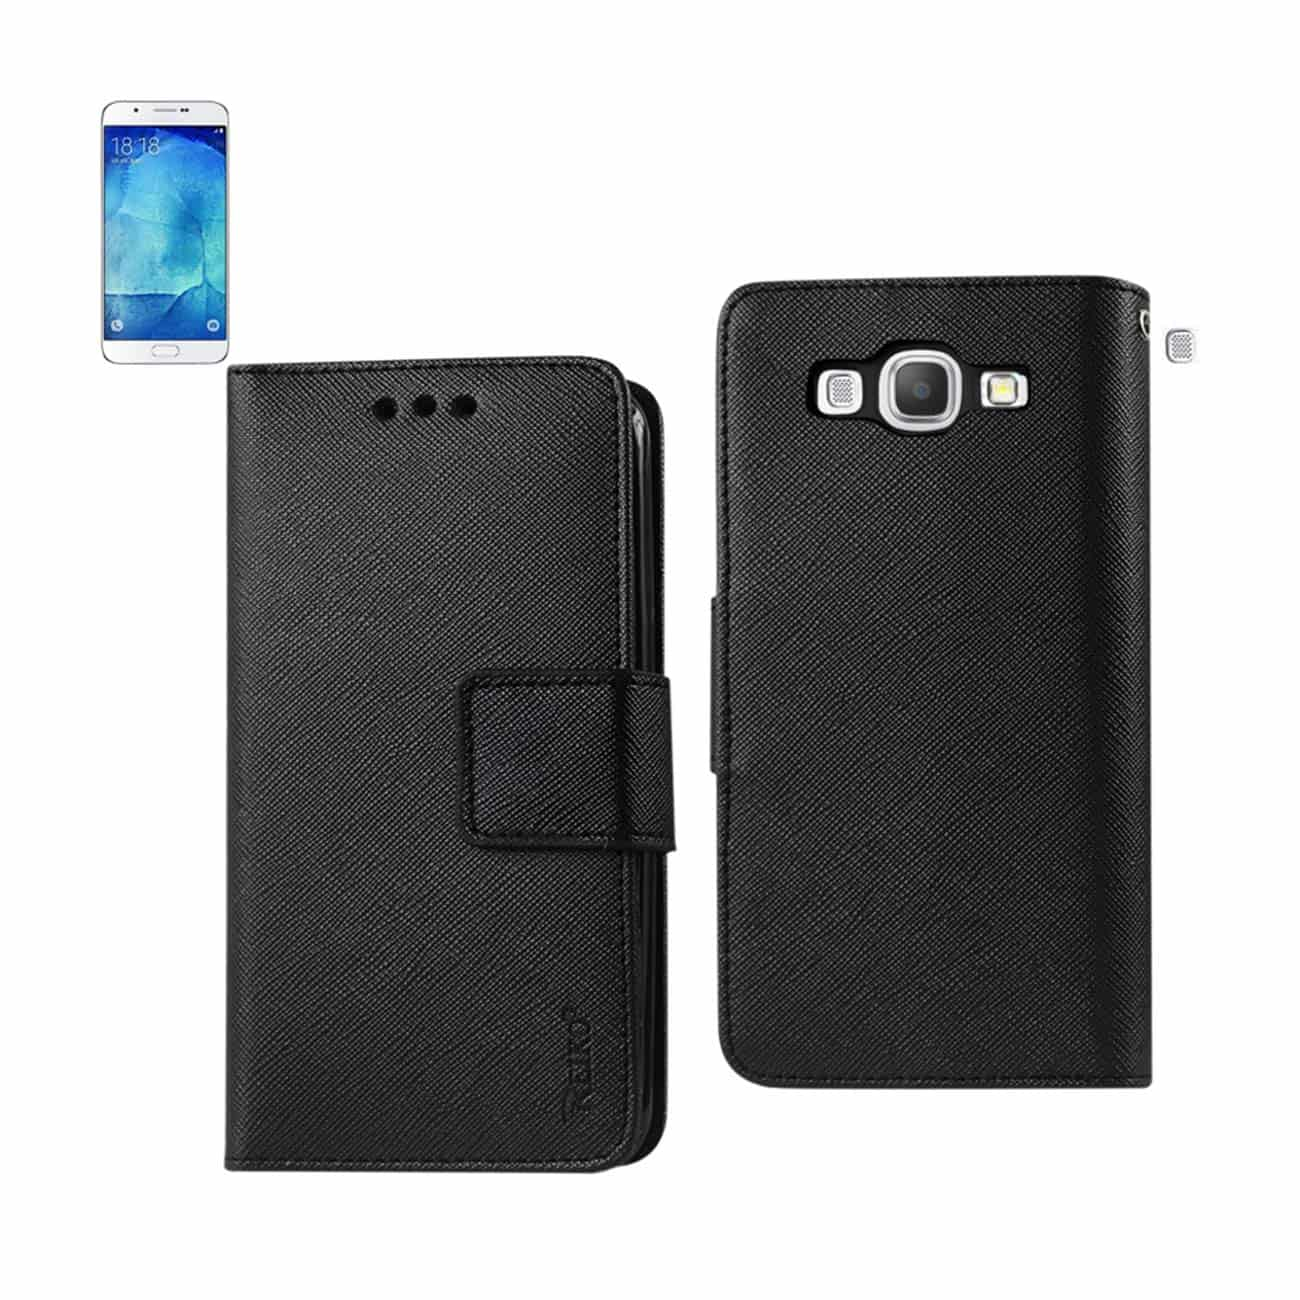 SAMSUNG GALAXY A8 3-IN-1 WALLET CASE IN BLACK